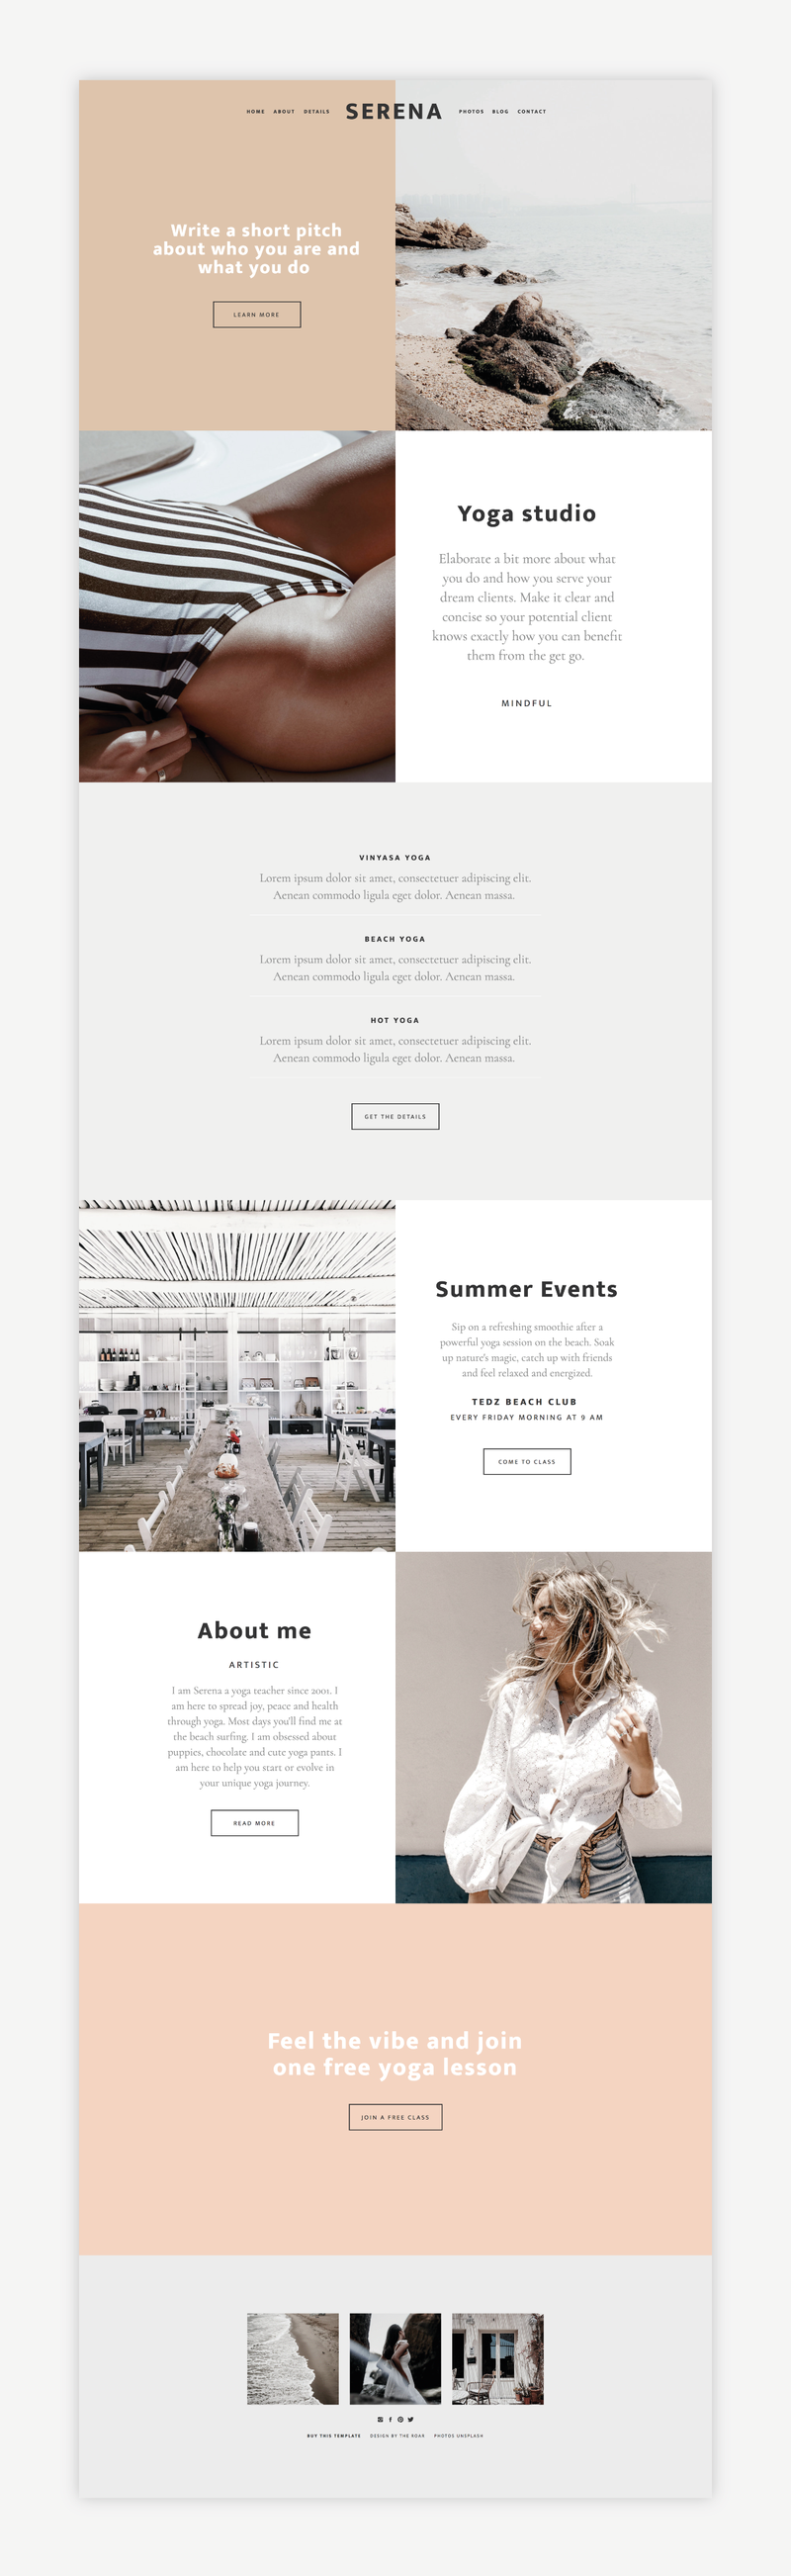 The Roar Showit Web Design Website Template Serena Shop